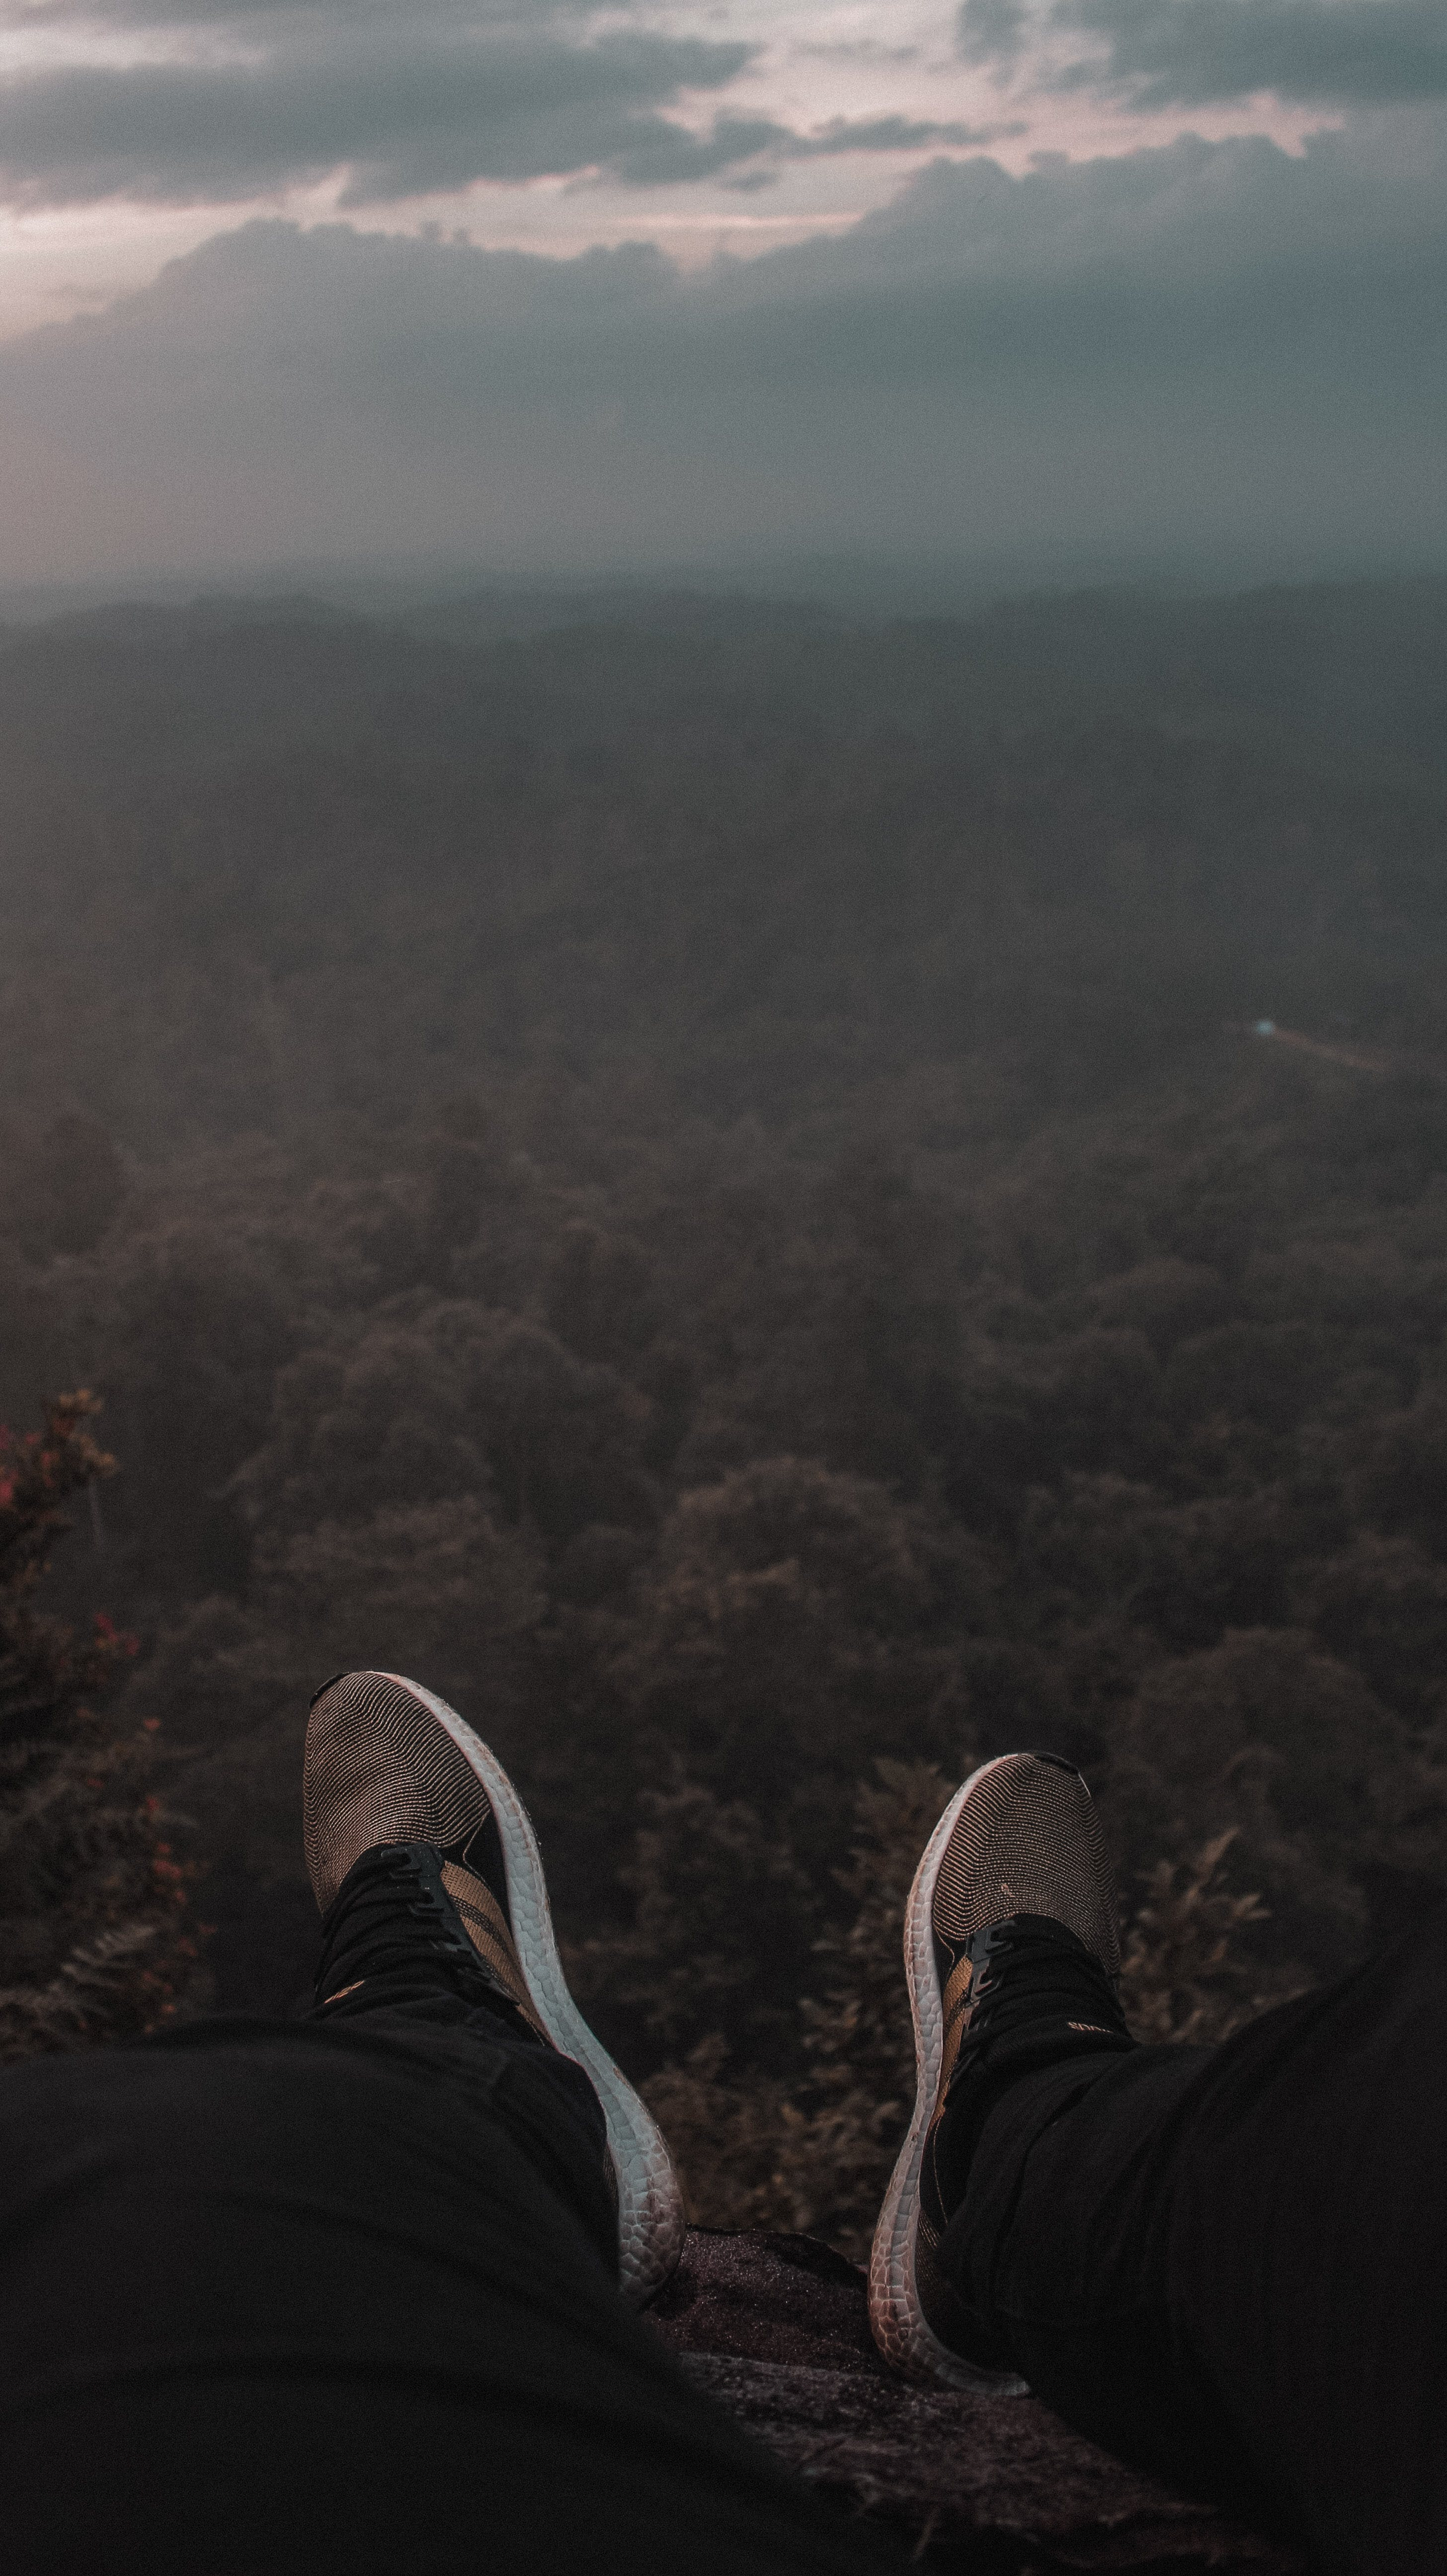 Person Sitting on the Edge of Mountain